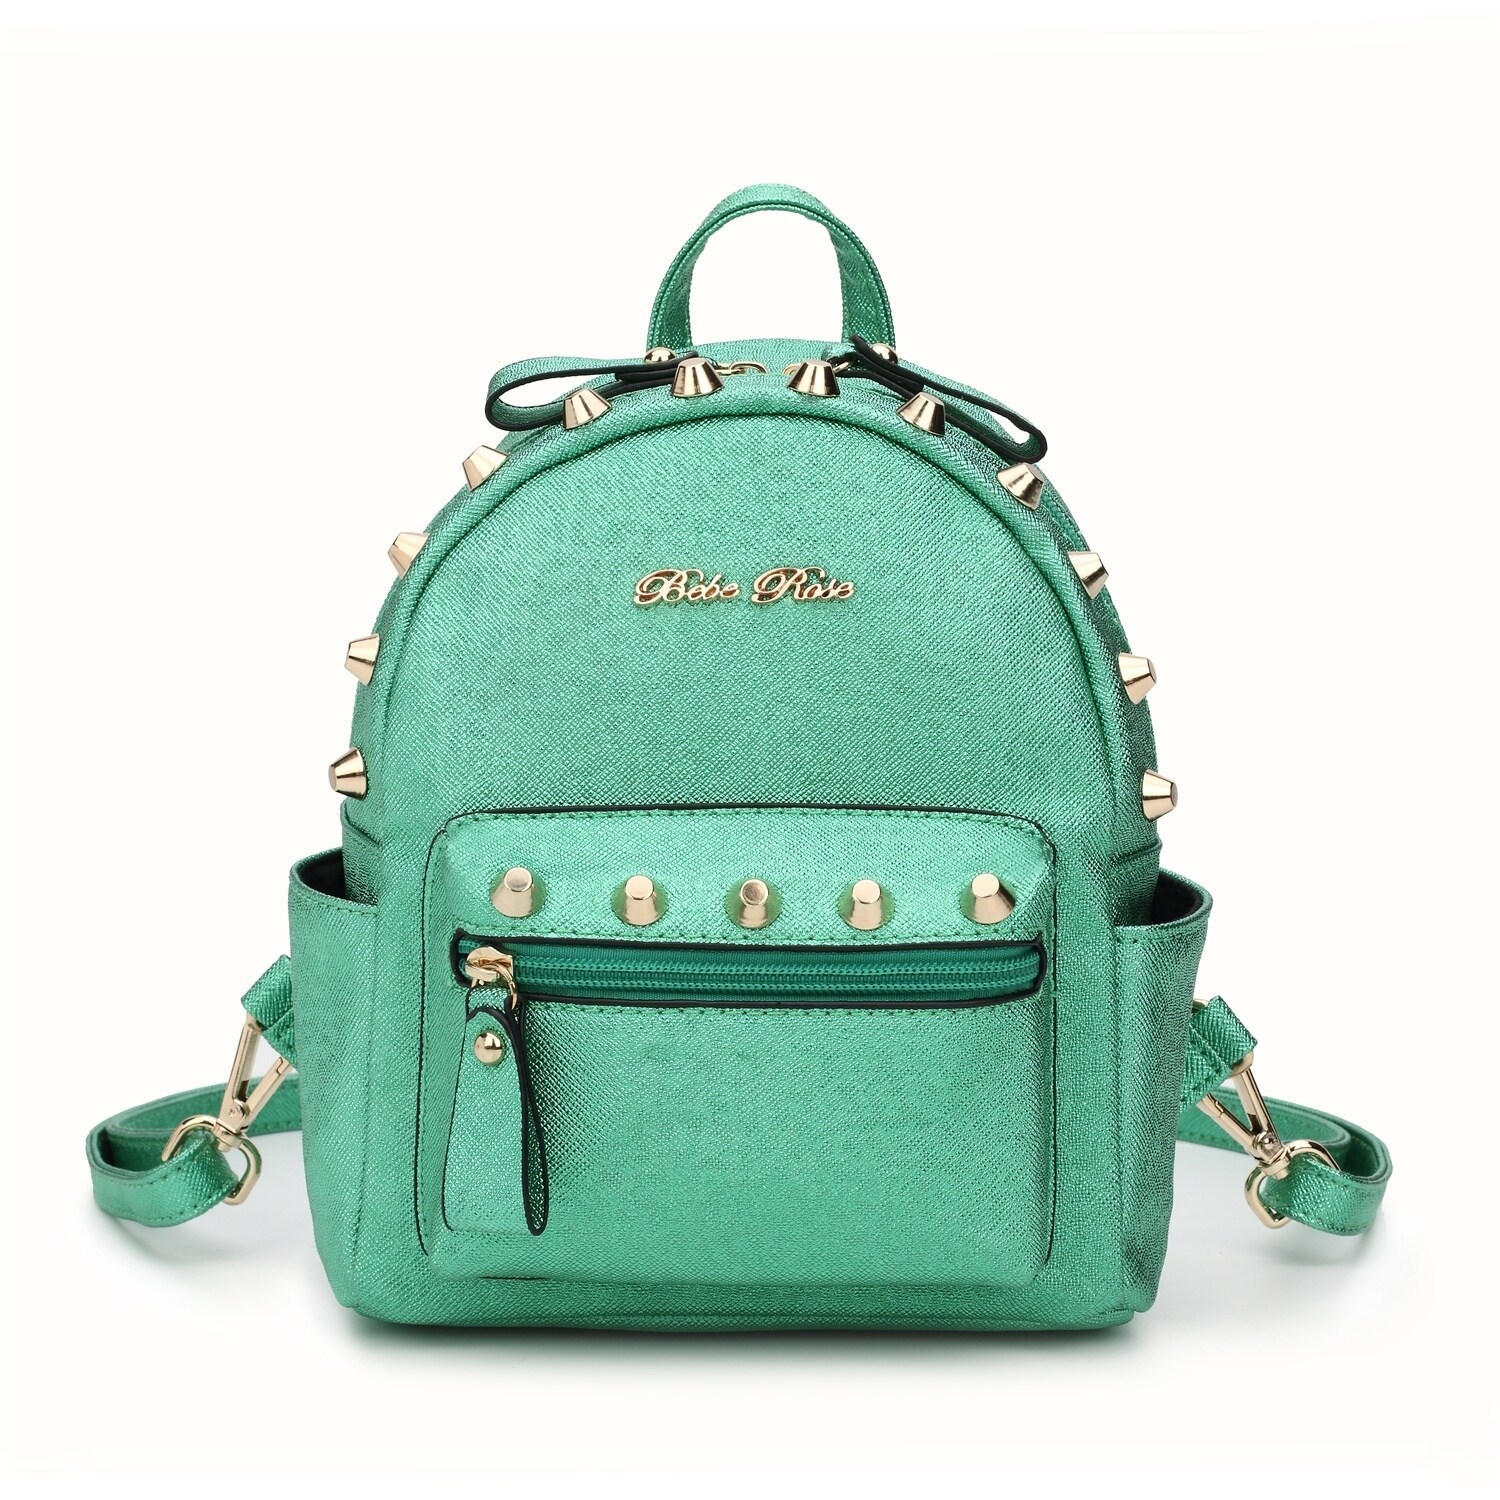 Green Handbags Our Best Clothing Shoes Deals Online At